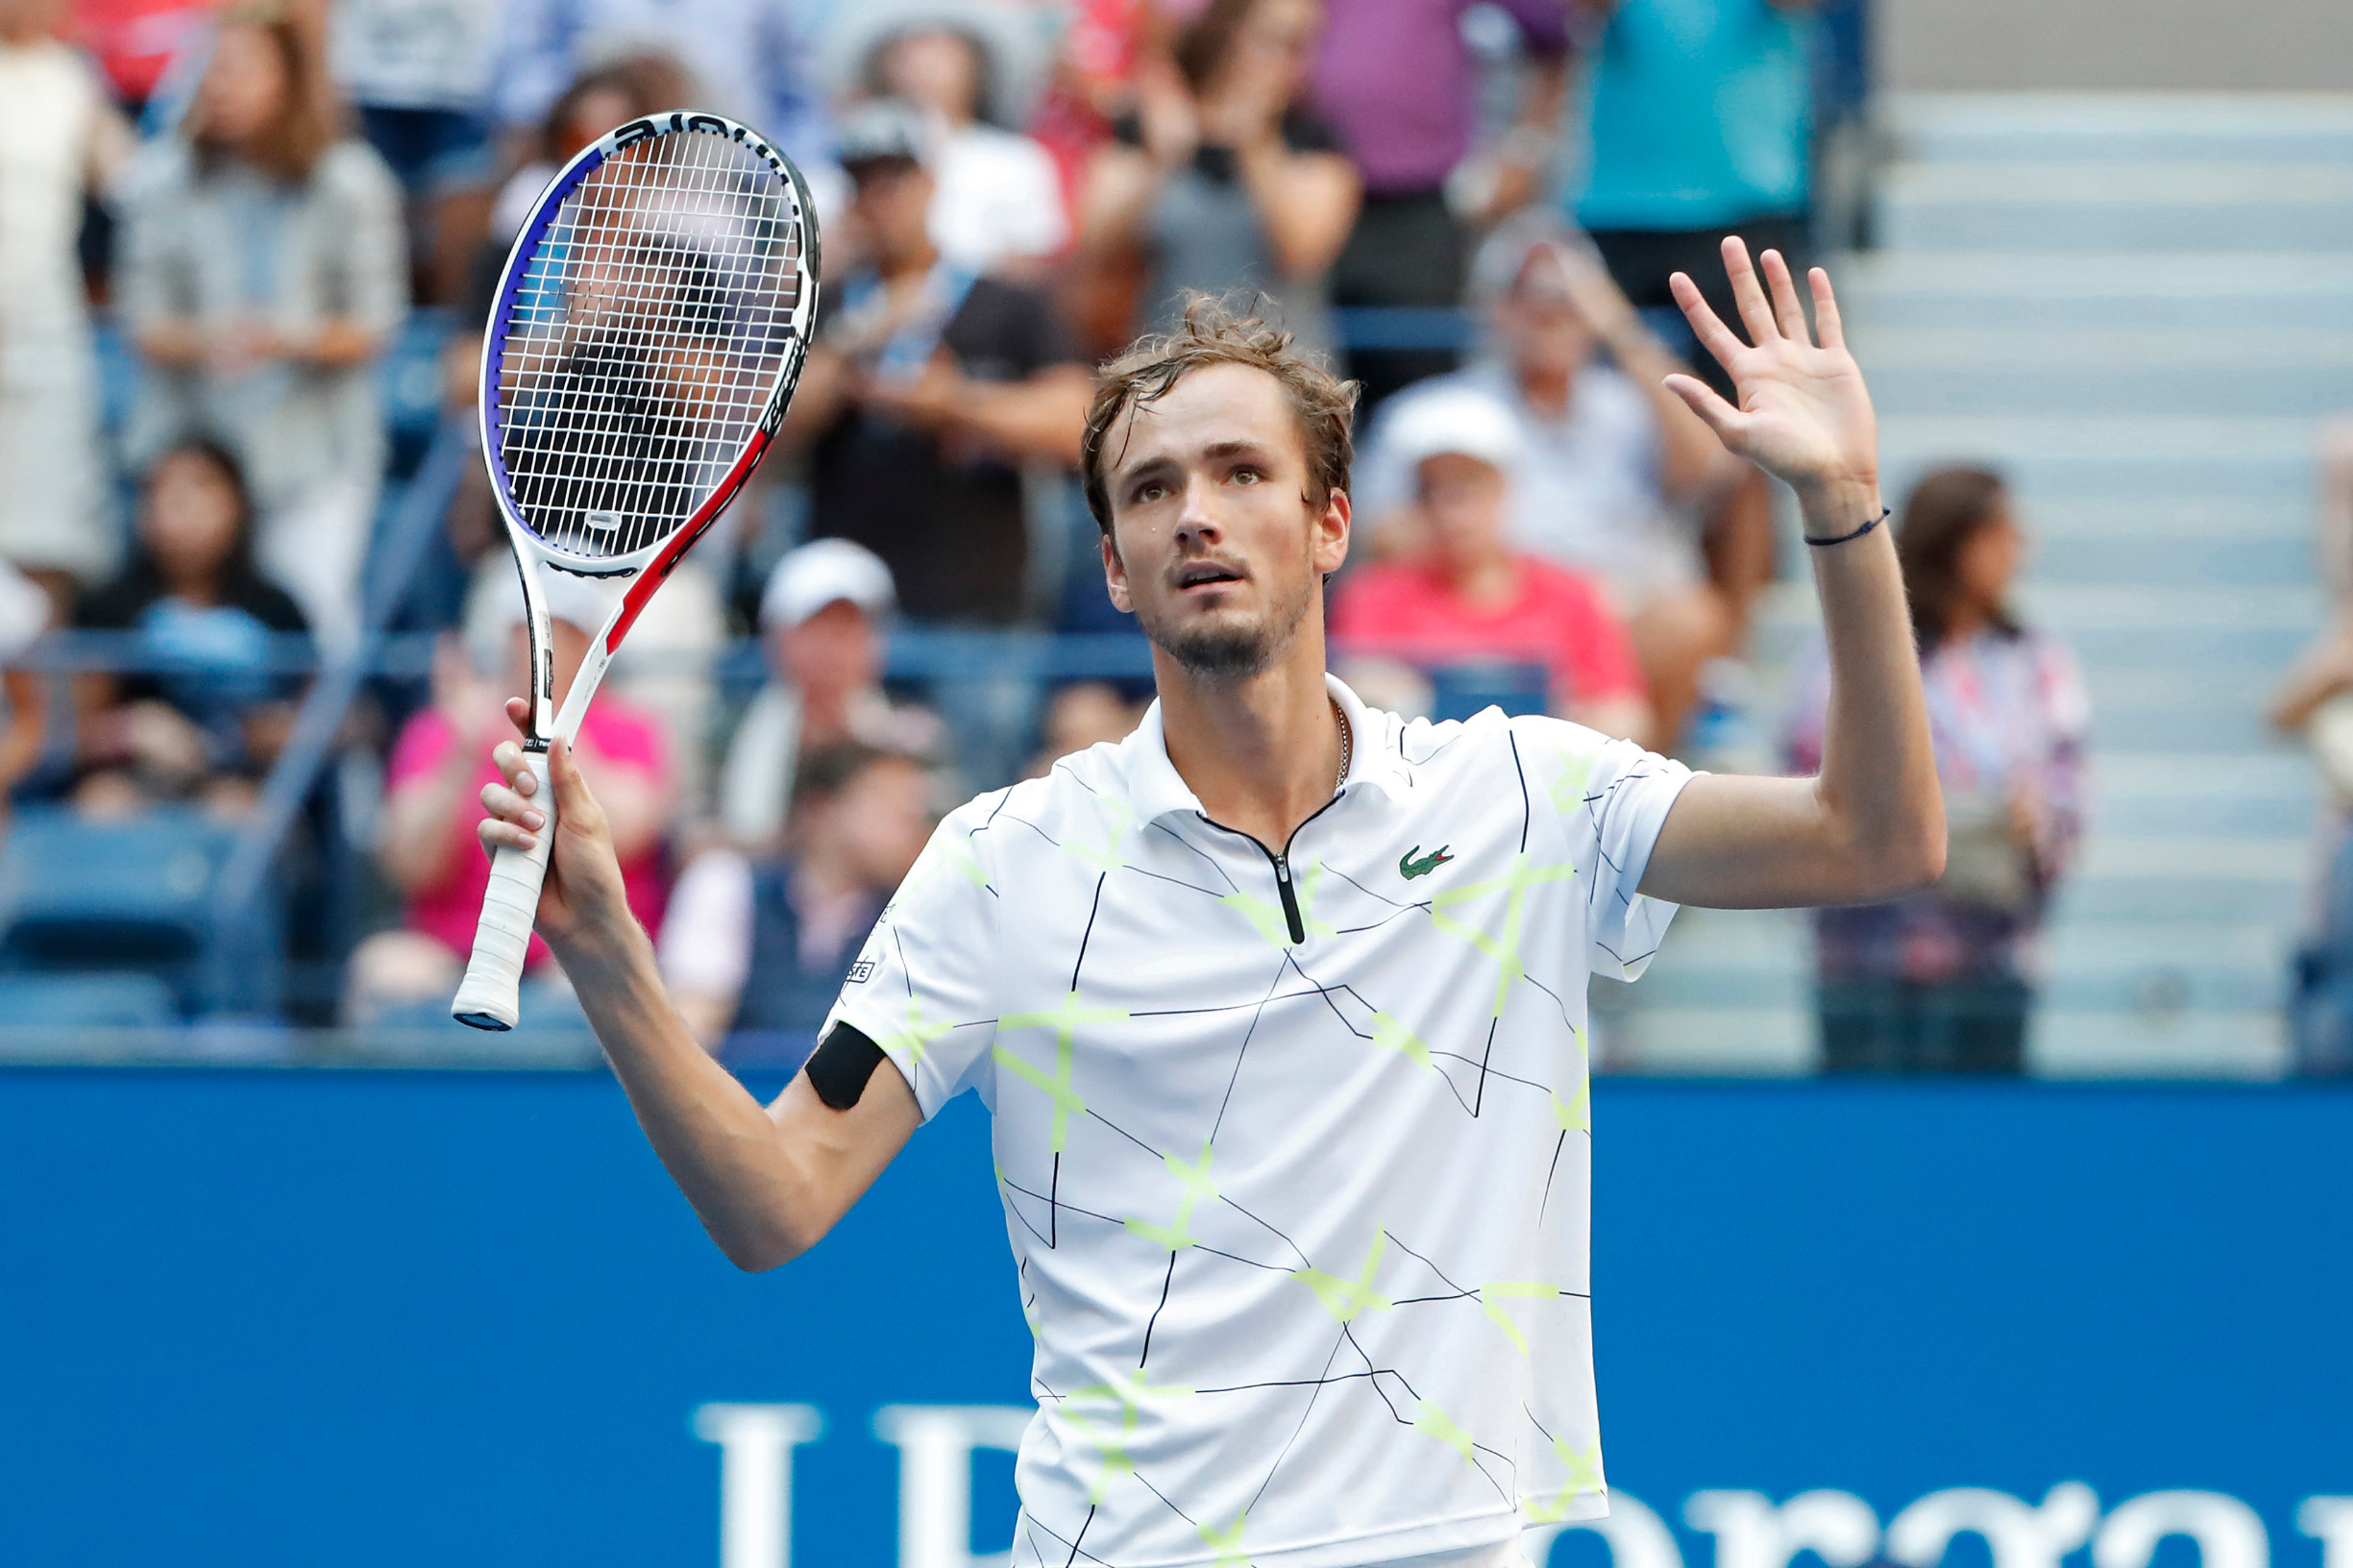 Sep 3, 2019; Flushing, NY, USA; Daniil Medvedev of Russia waves to the crowd after his match against Stan Wawrinka of Switzerland (not pictured) in a quarterfinal match on day nine of the 2019 US Open tennis tournament at USTA Billie Jean King National Tennis Center. Mandatory Credit: Geoff Burke-USA TODAY Sports - 13302804